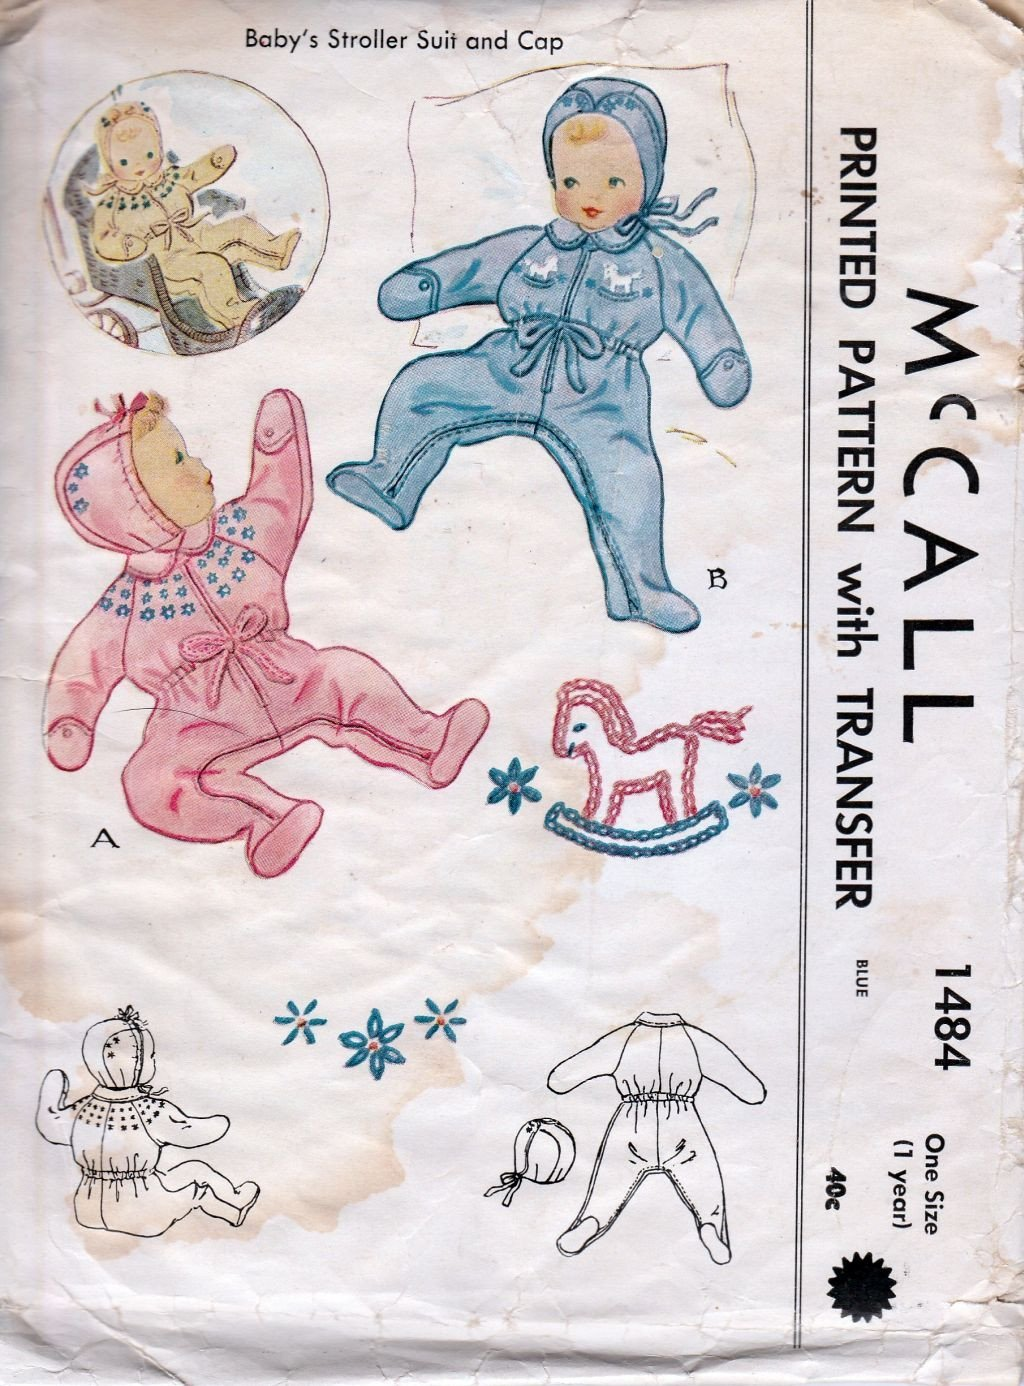 McCall 1484 Vintage 1940's Sewing Pattern Baby Toddler Romper Stroller Suit Cap Adorable - VintageStitching - Vintage Sewing Patterns